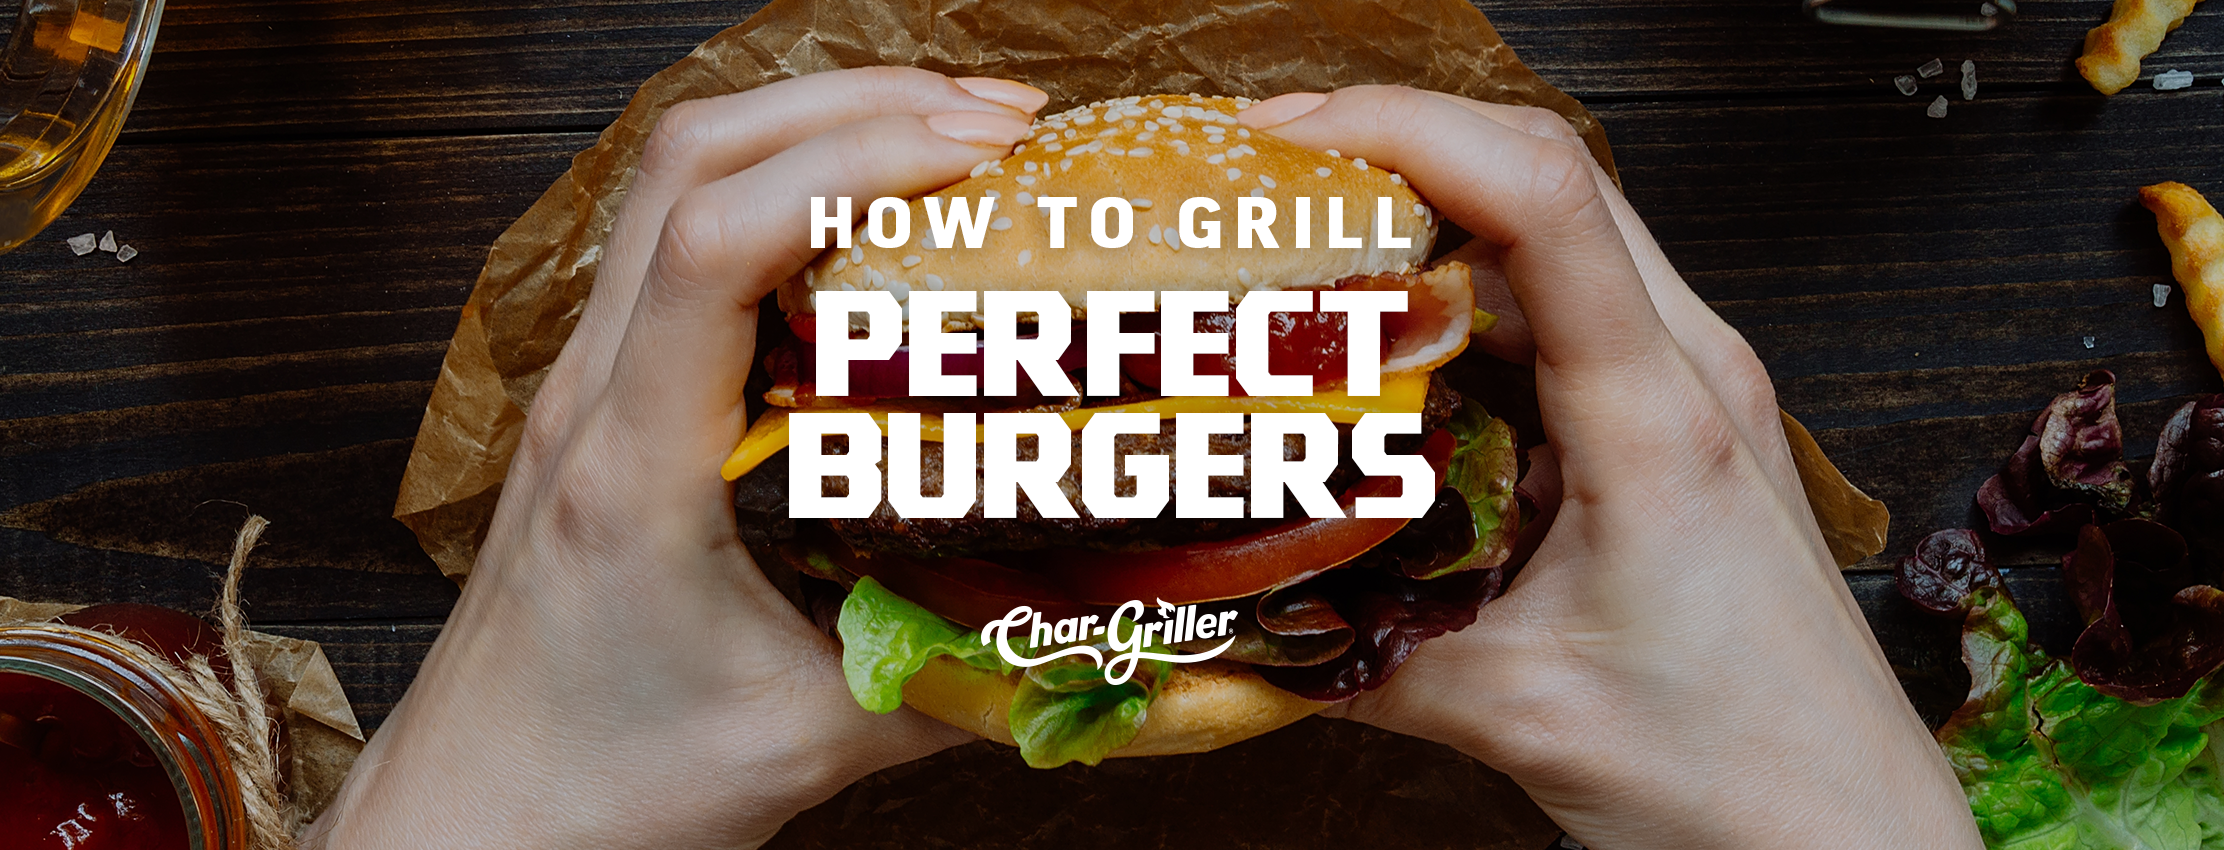 How to Grill Perfect Burgers Every Time